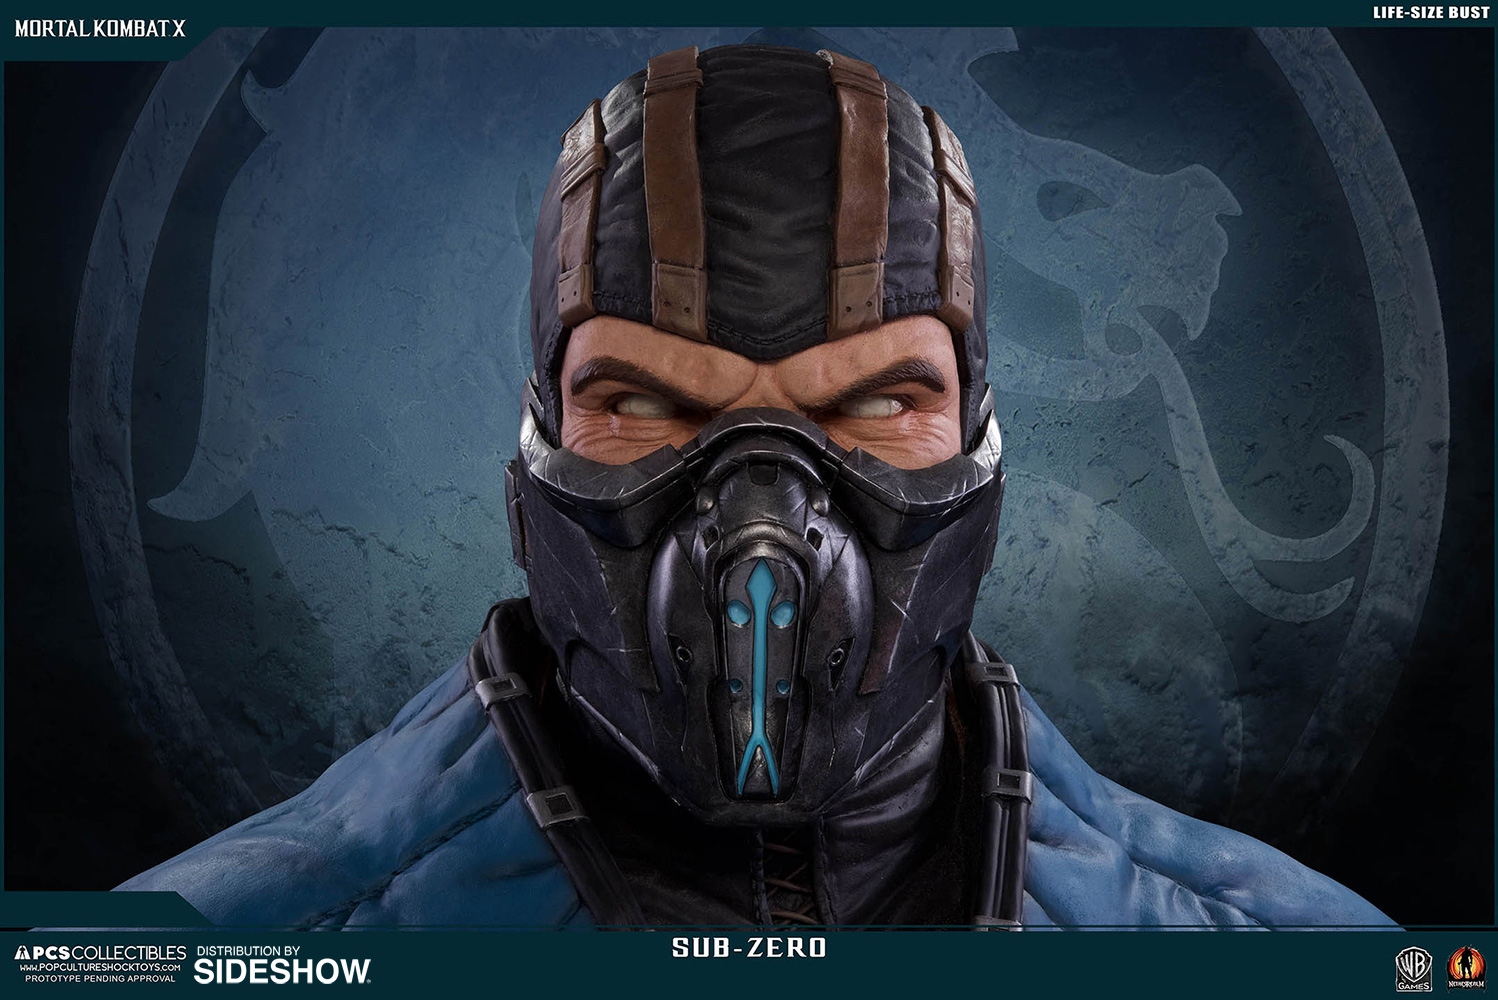 mortal kombat sub zero life size bust by pop culture shock sideshow collectibles. Black Bedroom Furniture Sets. Home Design Ideas